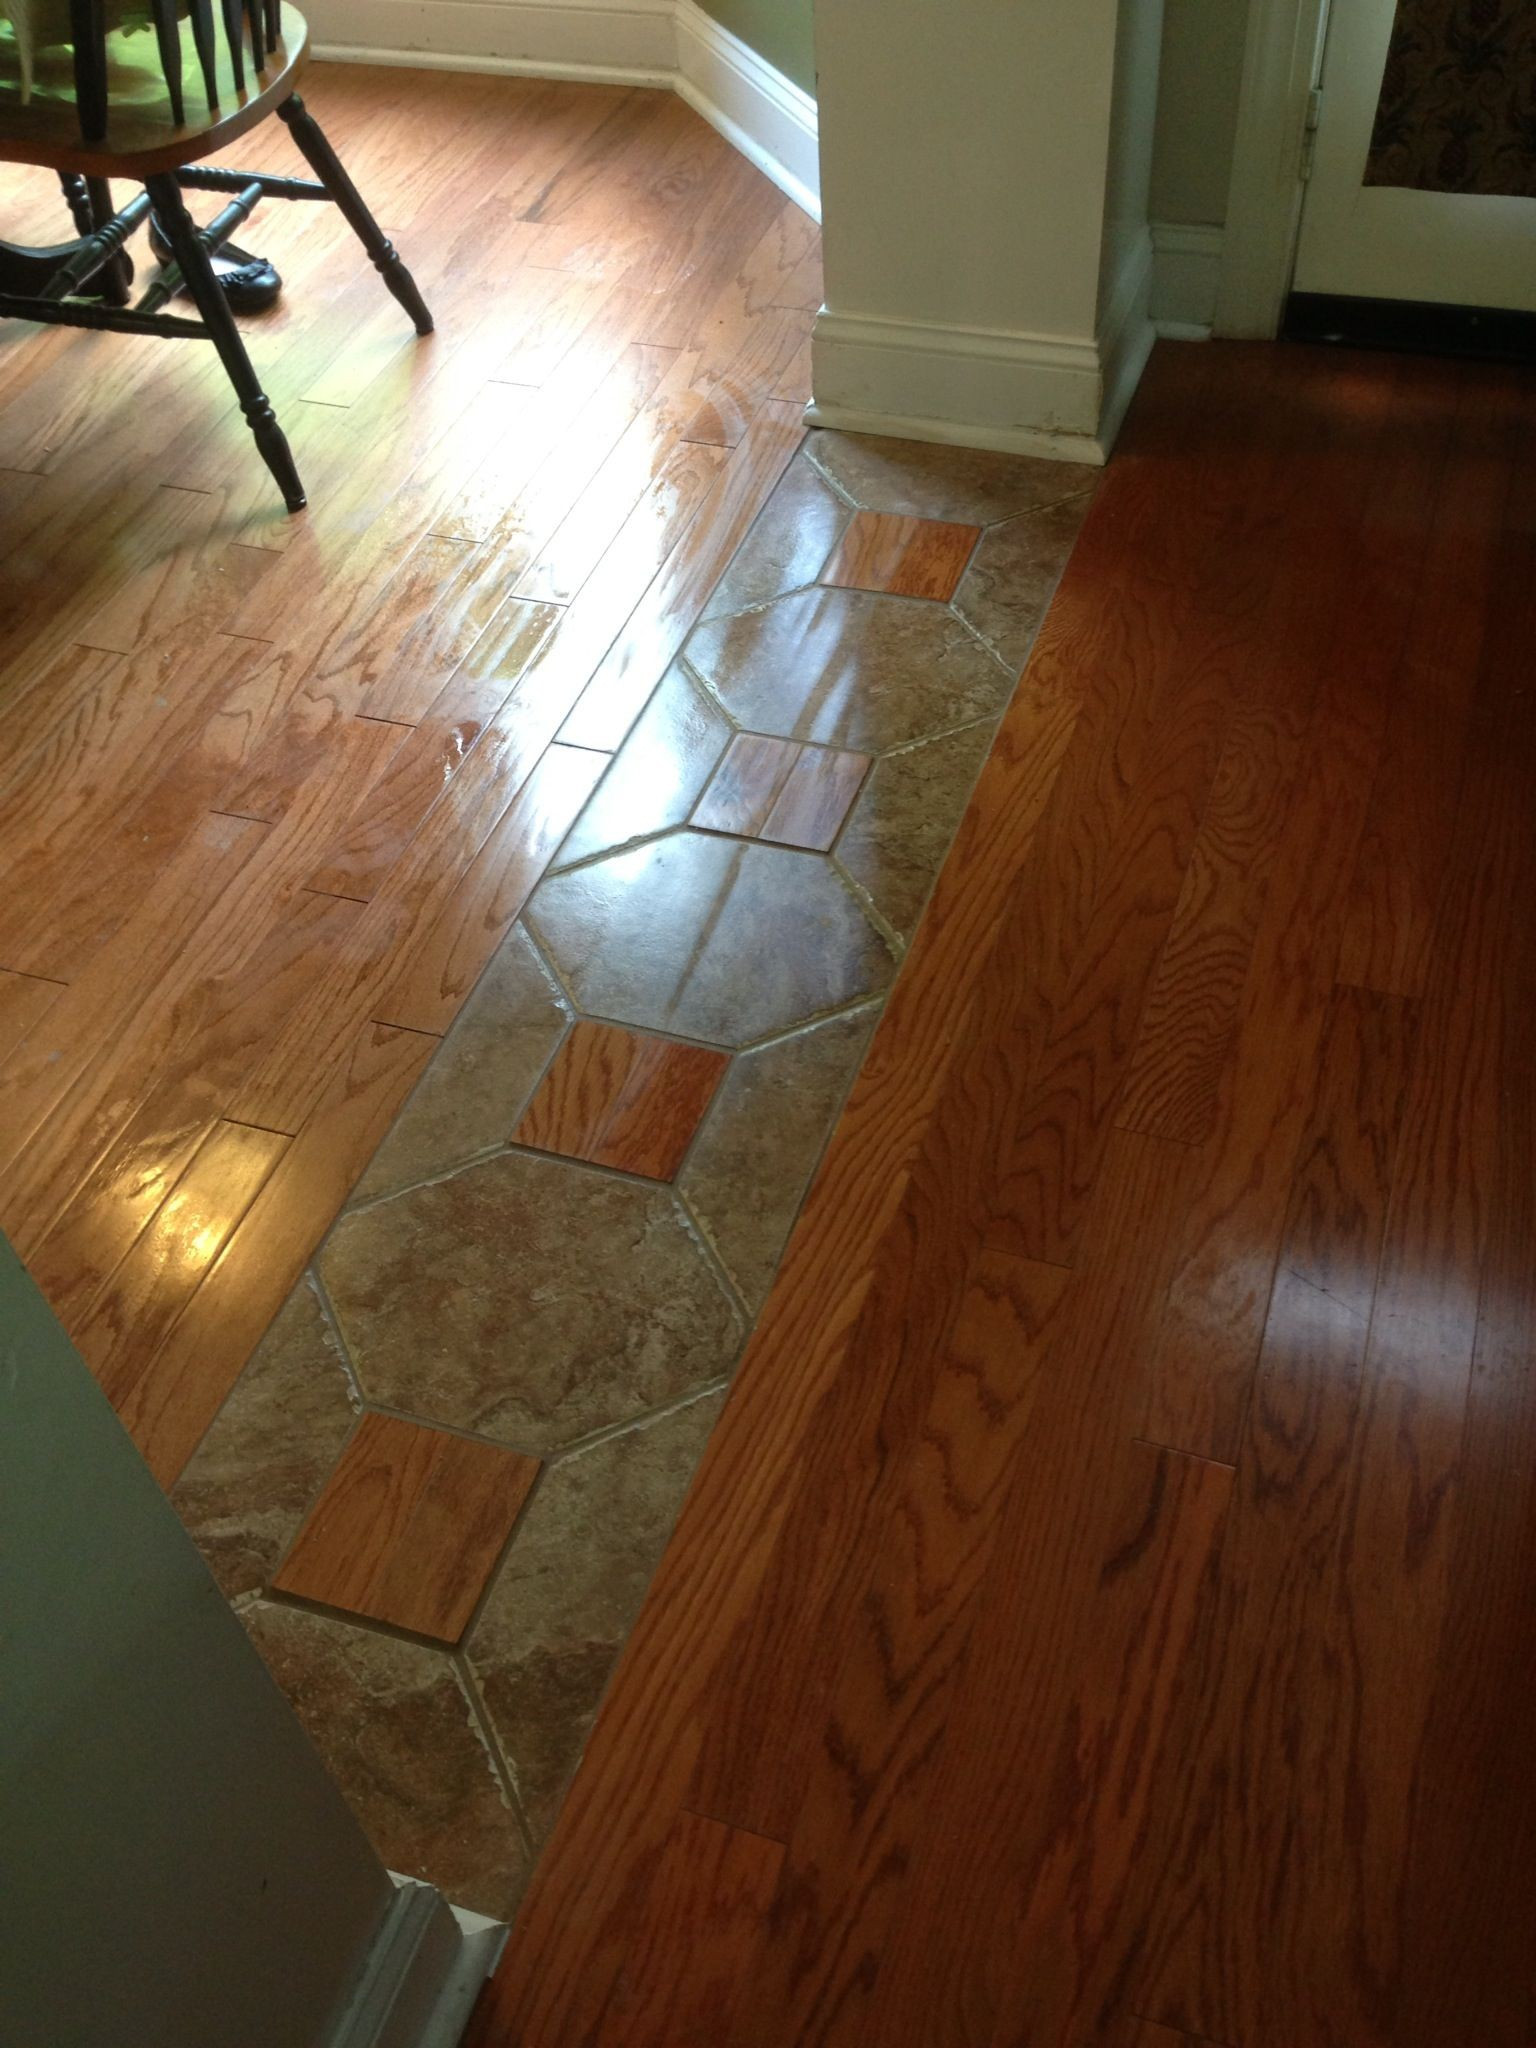 Gaps In My Hardwood Floor Of 13 Awesome How to Patch Hardwood Floor Collection Dizpos Com with How to Patch Hardwood Floor Fresh A Really Cool Way to Tie Two Different Hardwood Lots